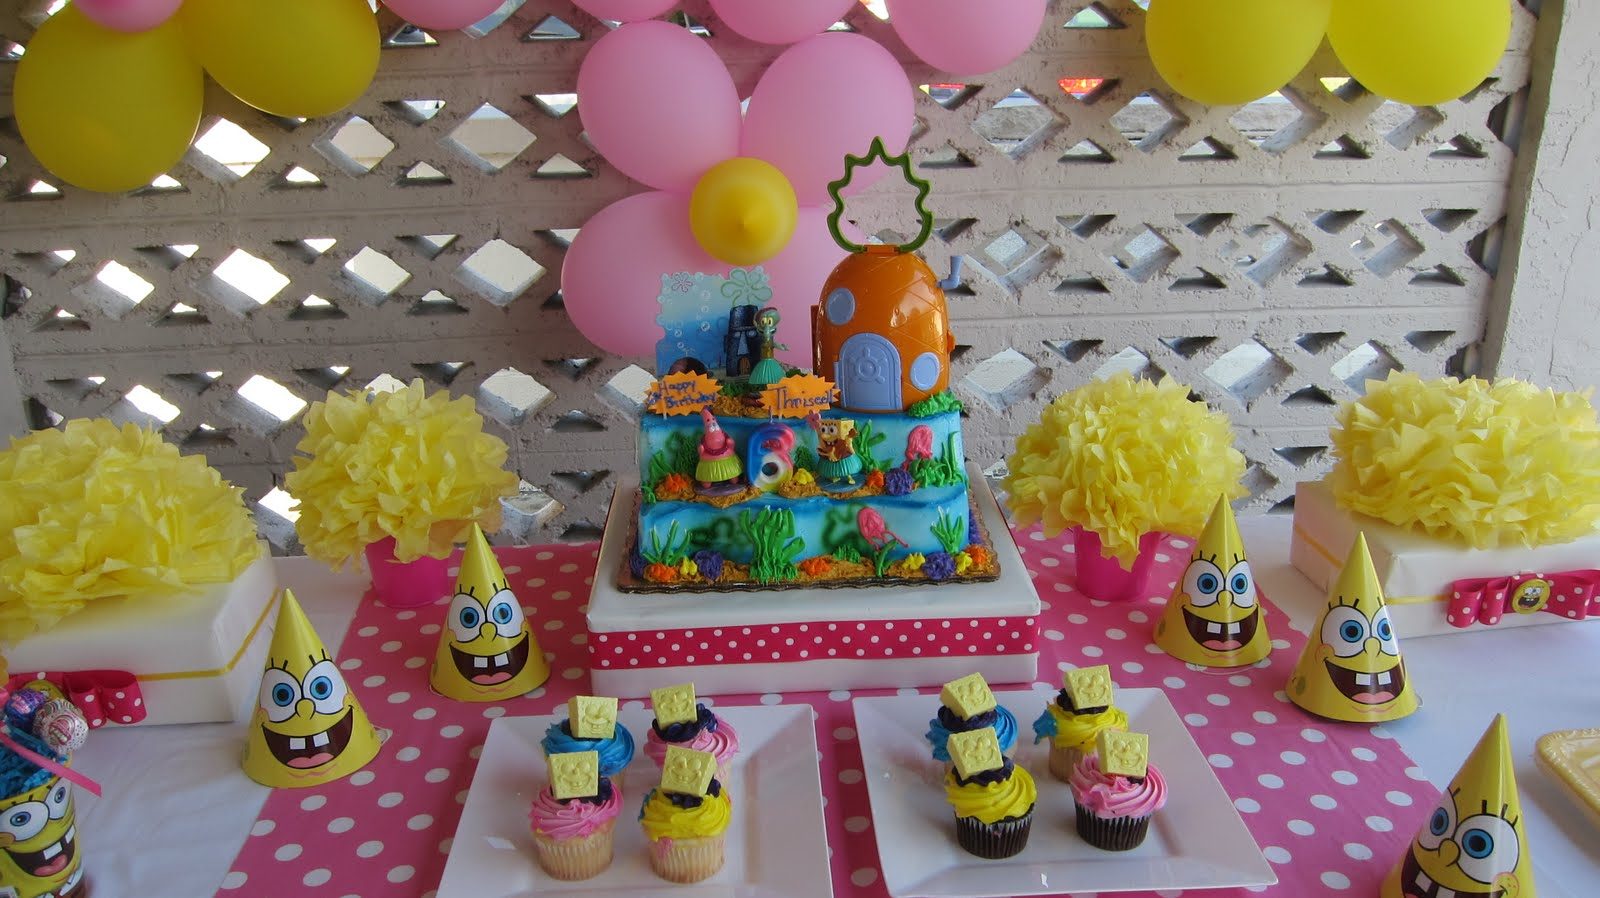 Simplyiced Party Details Pink And Yellow Spongebob